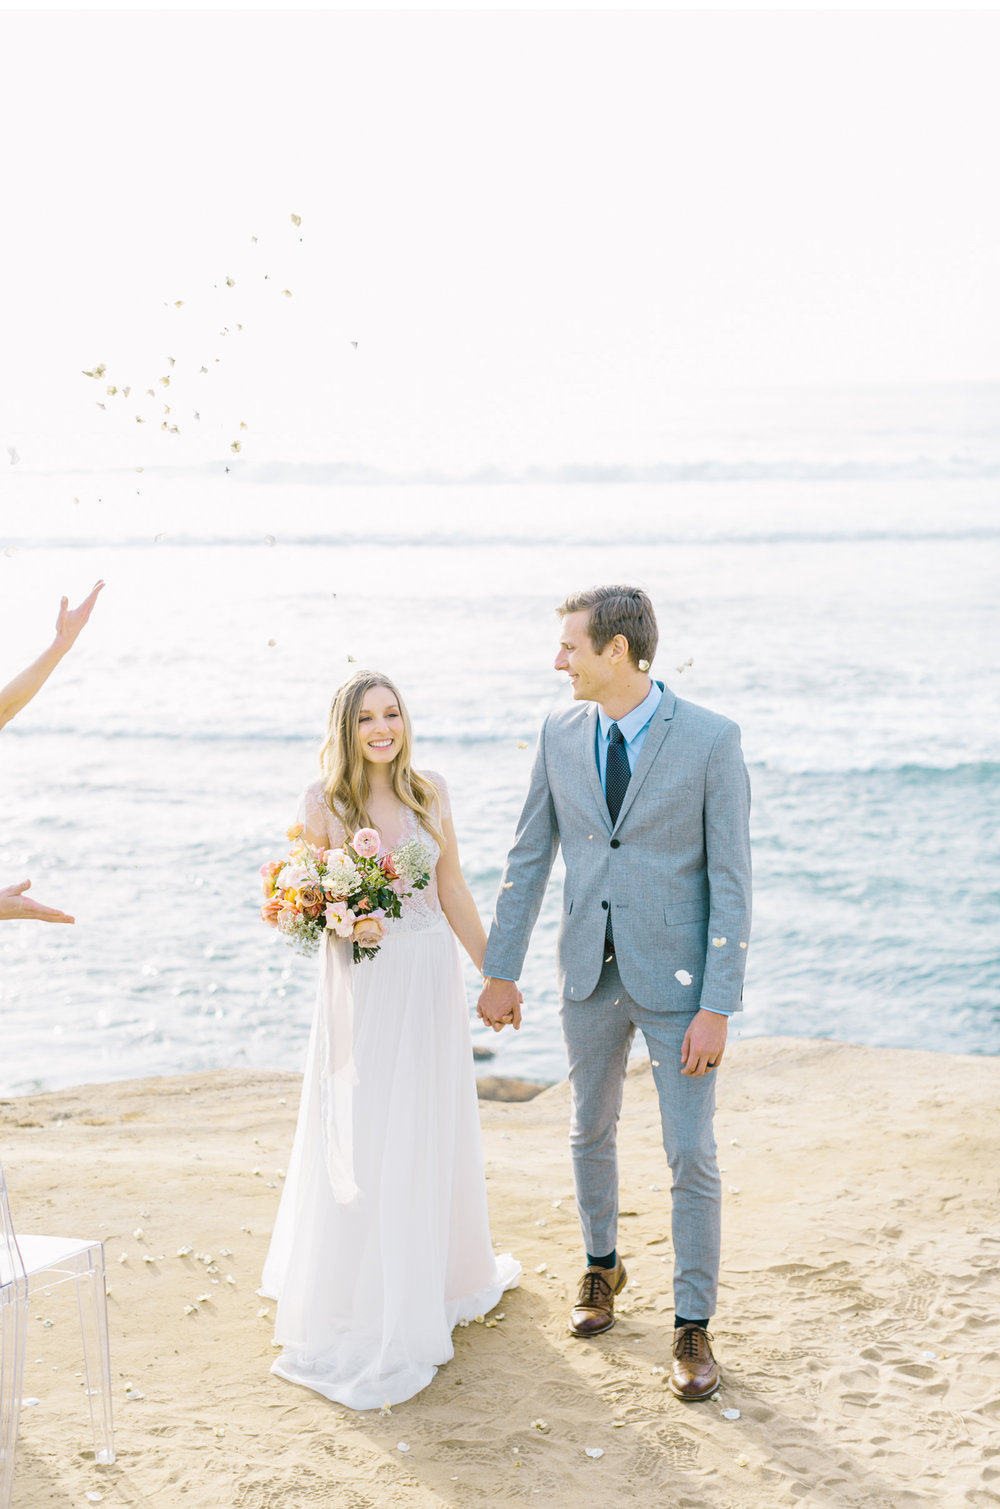 Style-Me-Pretty-California-Beach-Wedding-Natalie-Schutt-Photography_02.jpg